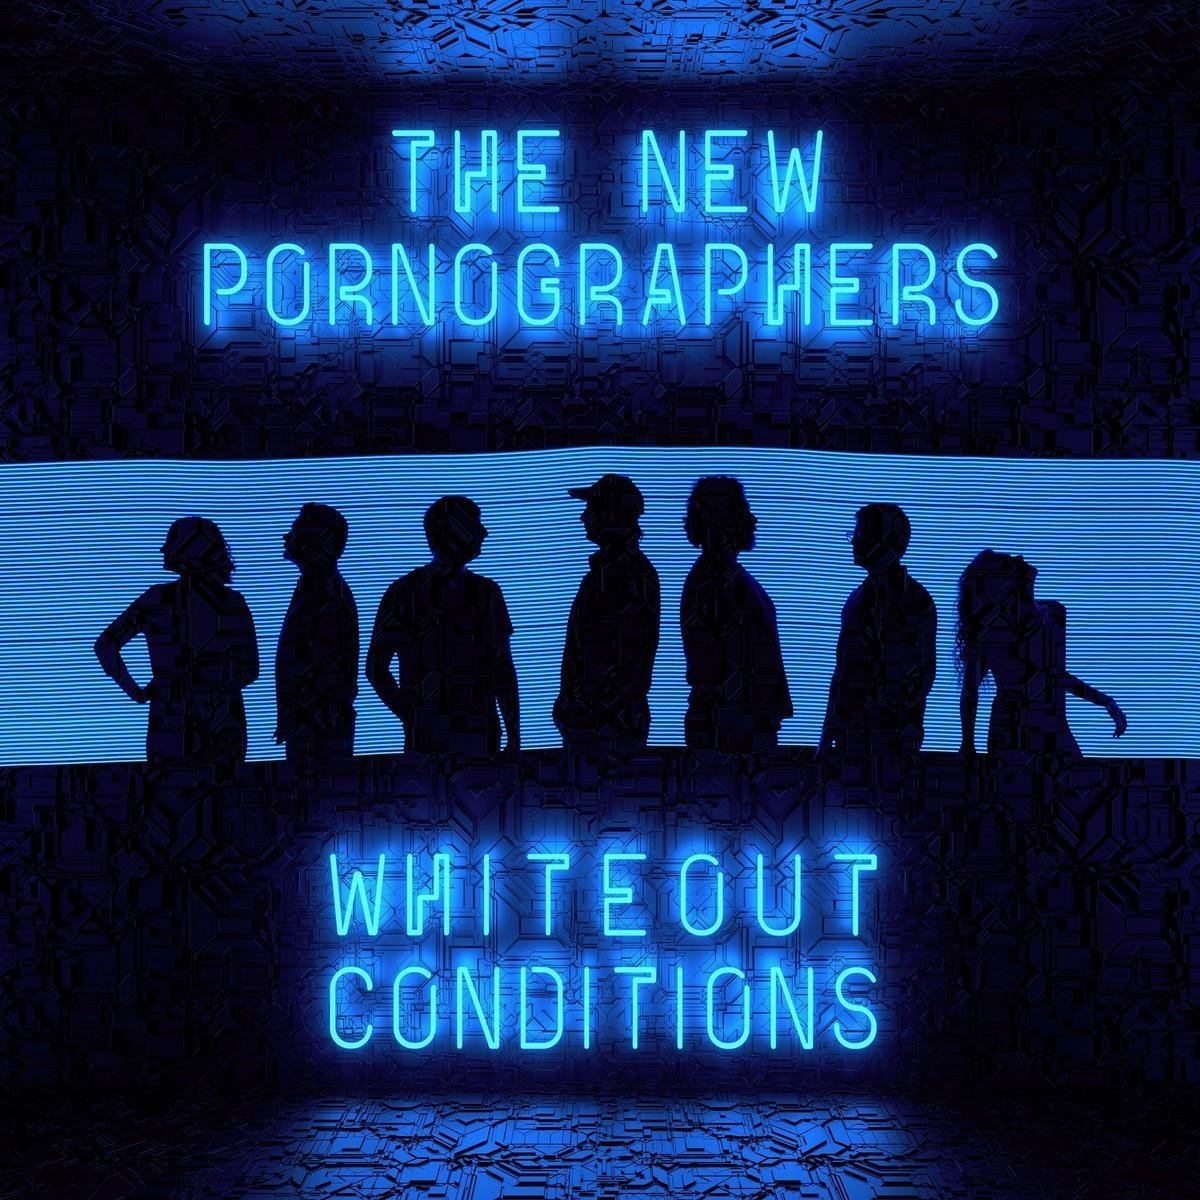 The New Pornographers: Whiteout Conditions [Album Review]